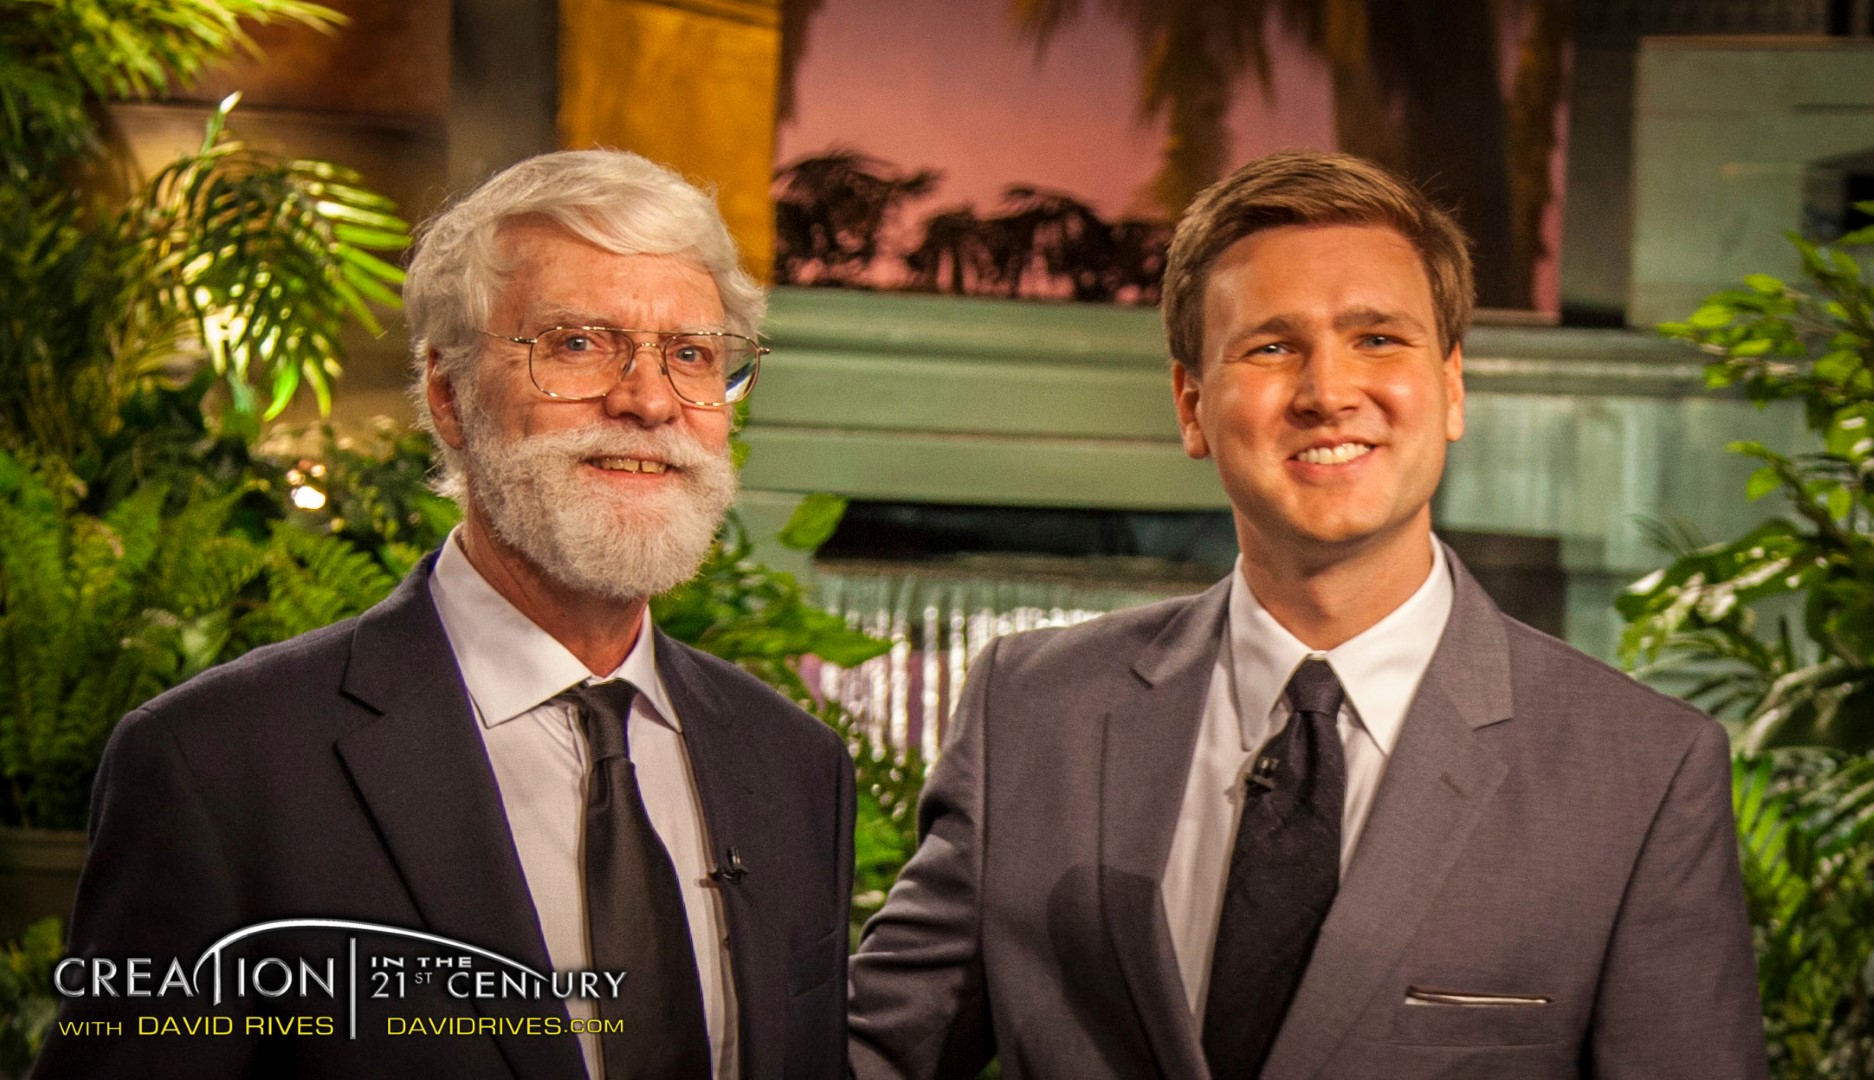 Earth's Mysterious Magnetism – With David Rives and Dr. Russell Humphreys on TBN